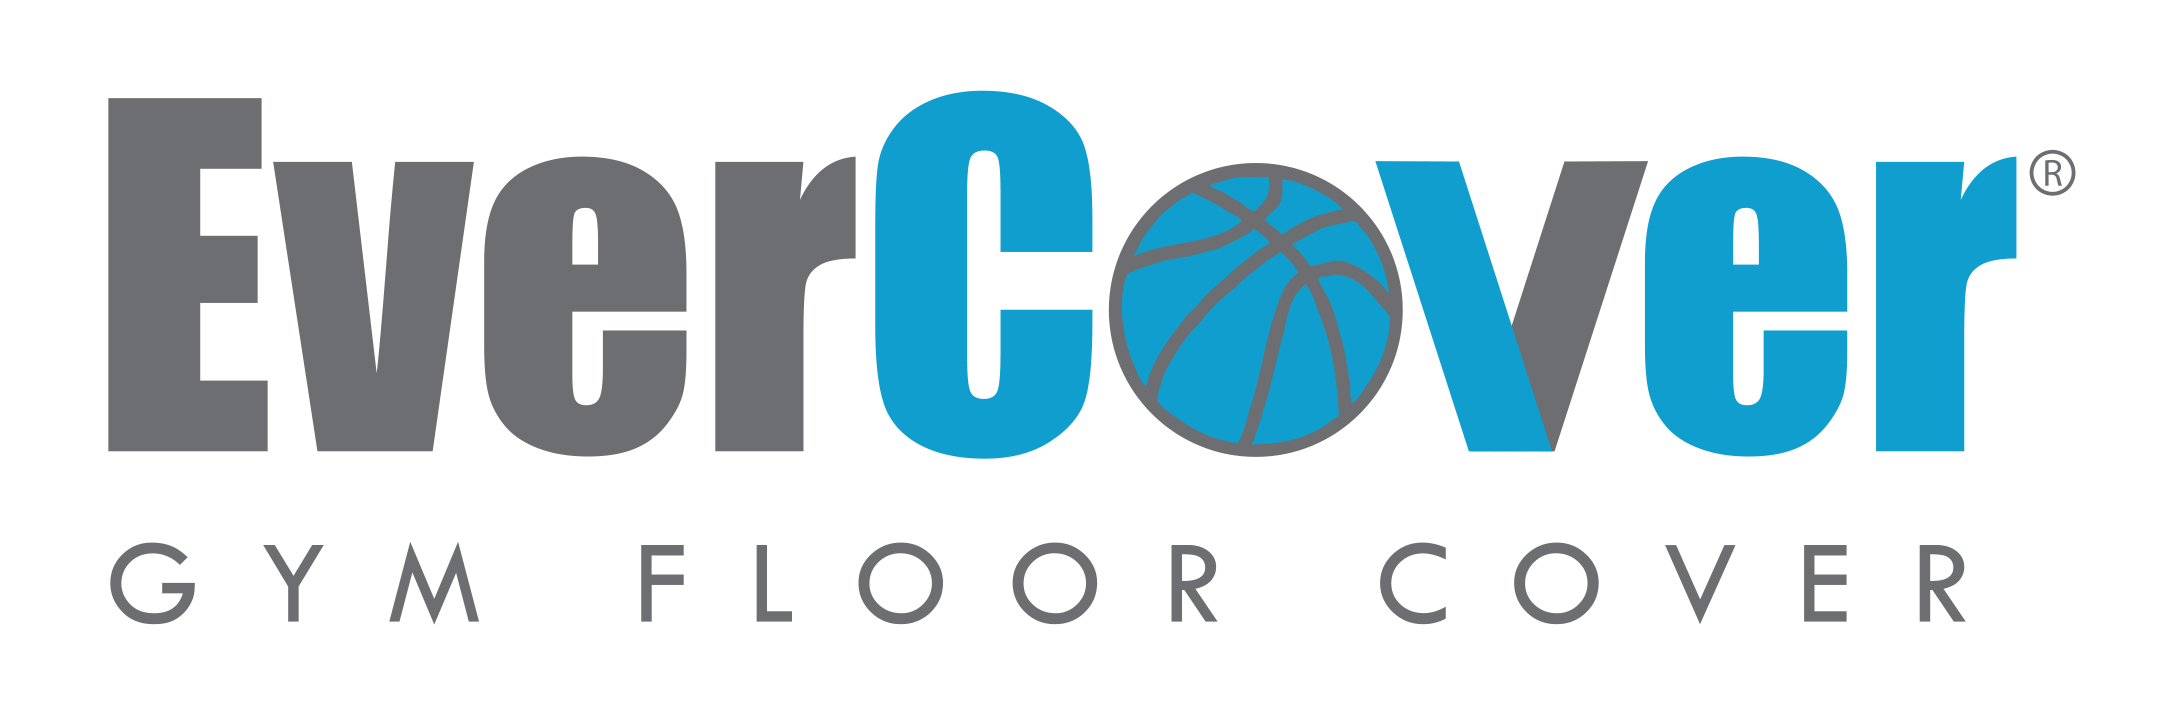 EverCover gym floor protection